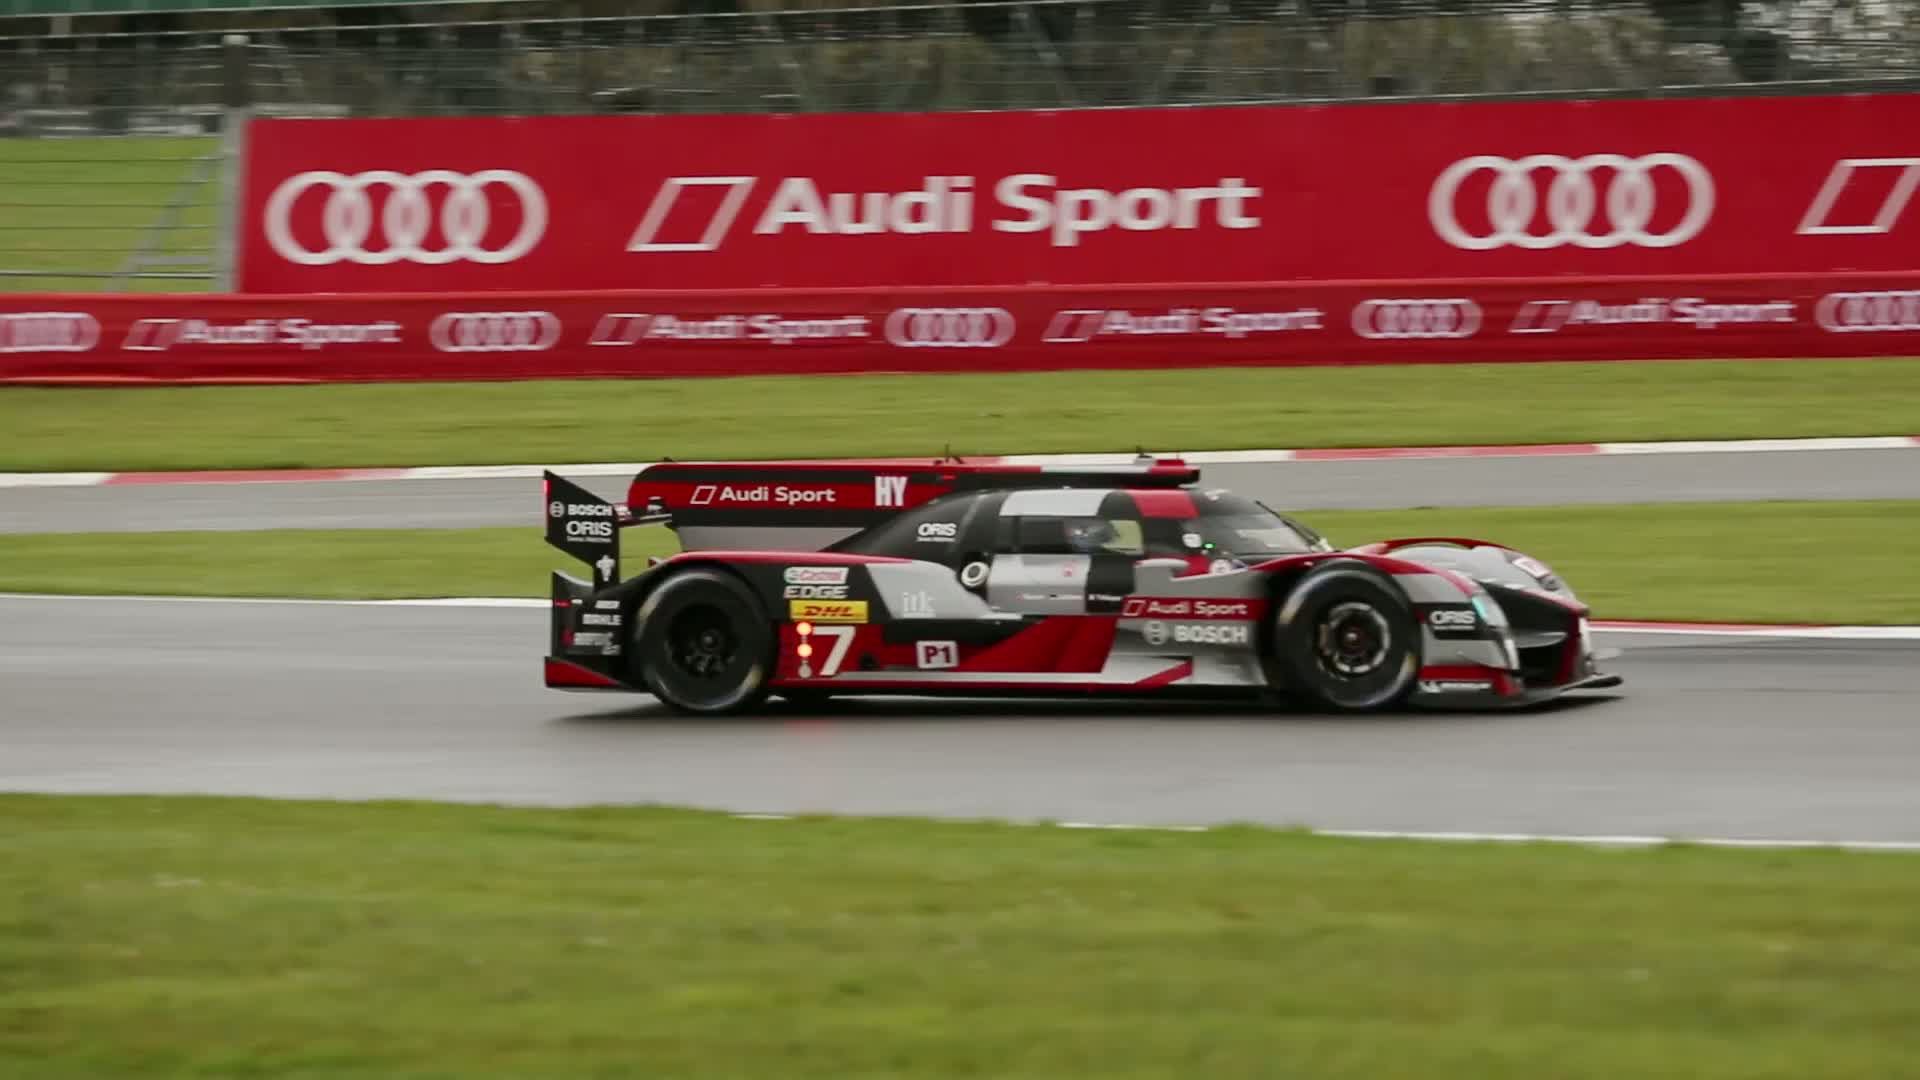 60 Seconds of Audi Sport 6/2016 – WEC Silverstone, Pole-Position